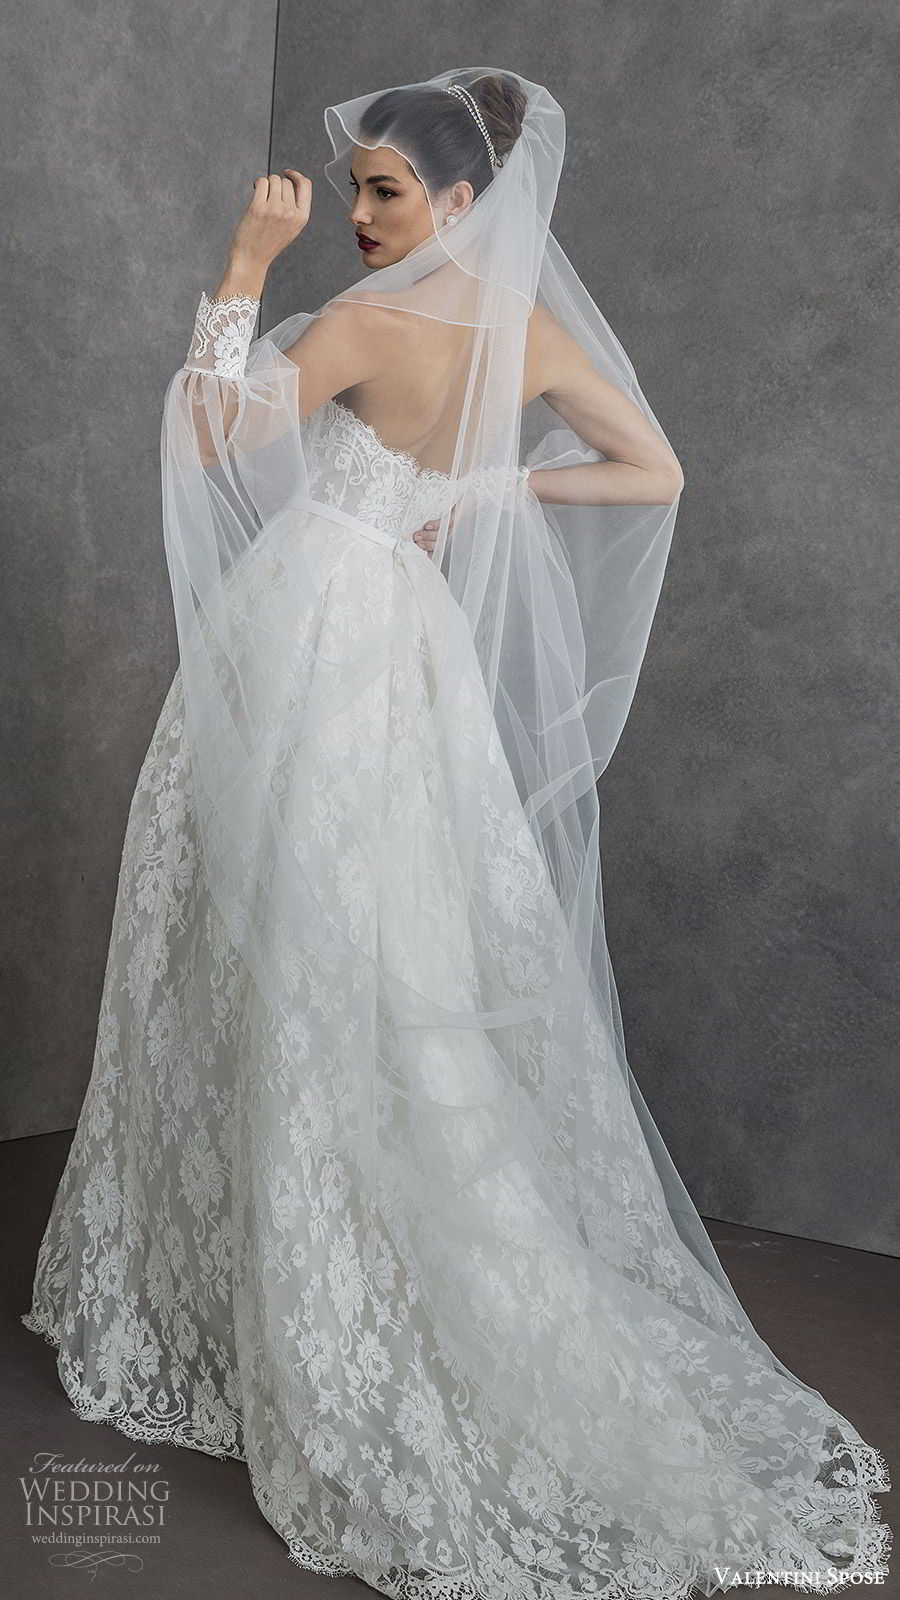 valentini spose spring 2020 bridal strapless sweetheart fully lace a line ball gown wedding dress (4) sheer long sleeve jacket modern romantic sweep train bv